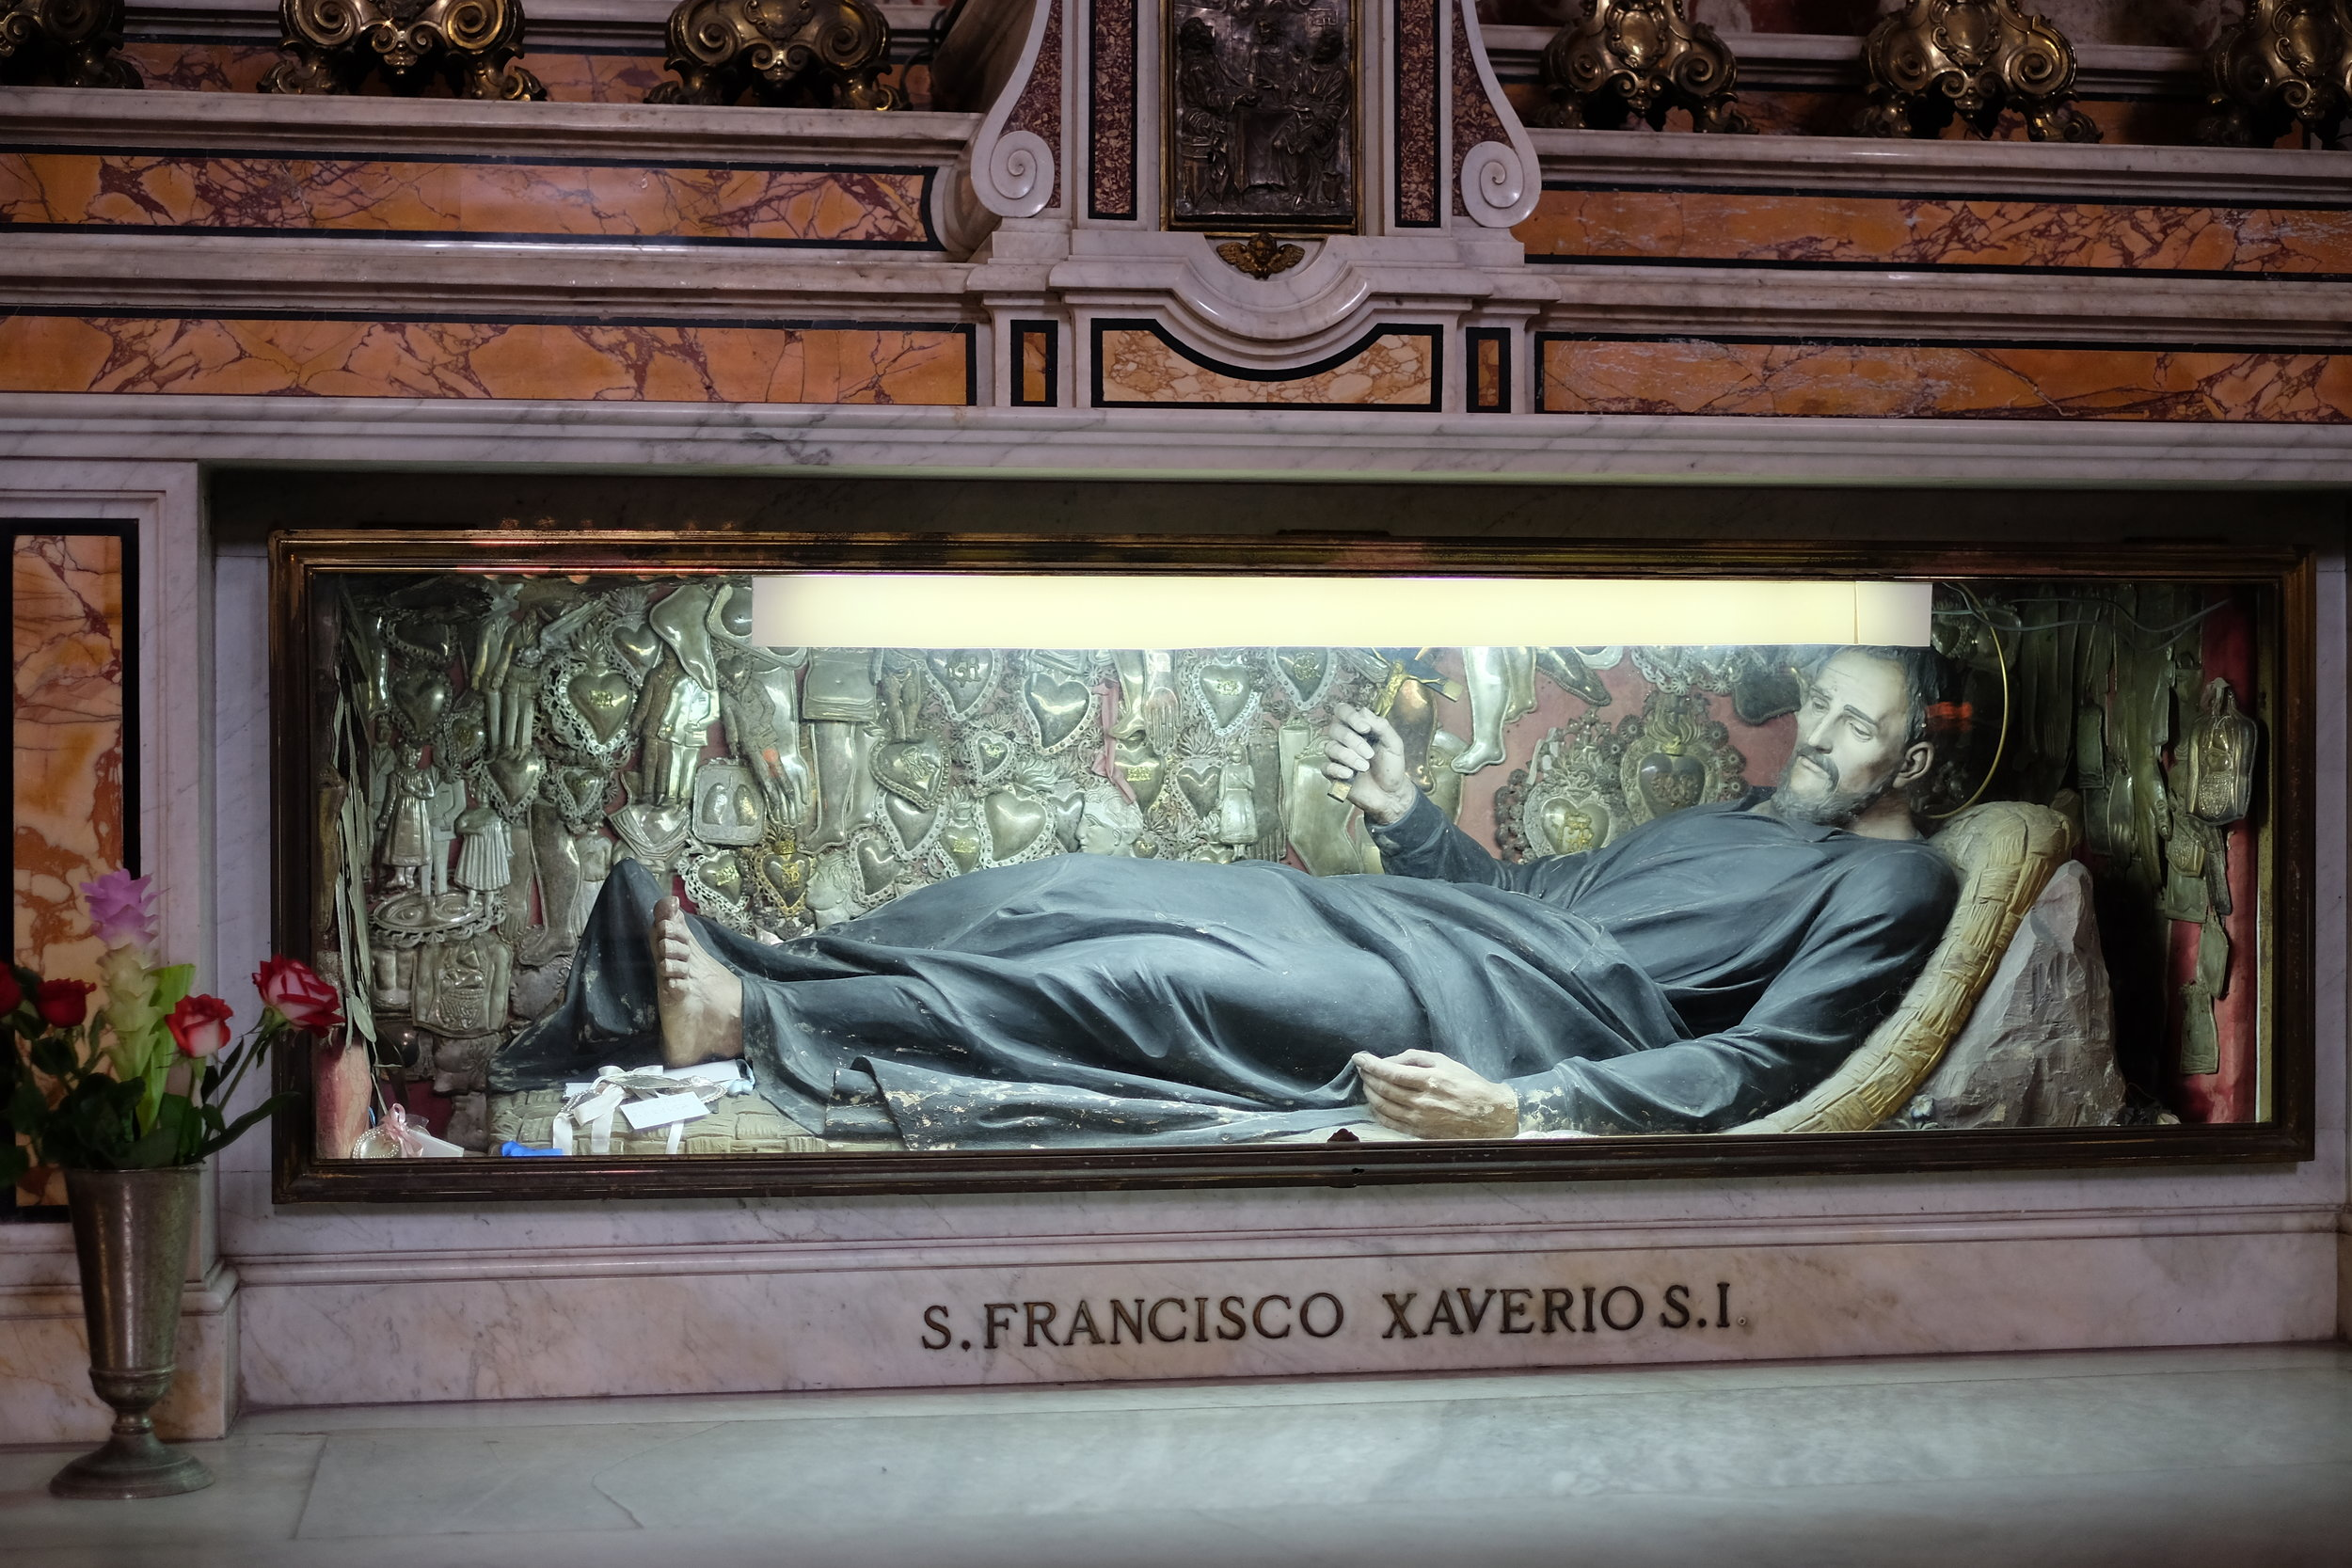 Ex-voto at the back of the glass case, offered to St. Francis Xaverio in the Gesú Nuovo Church.